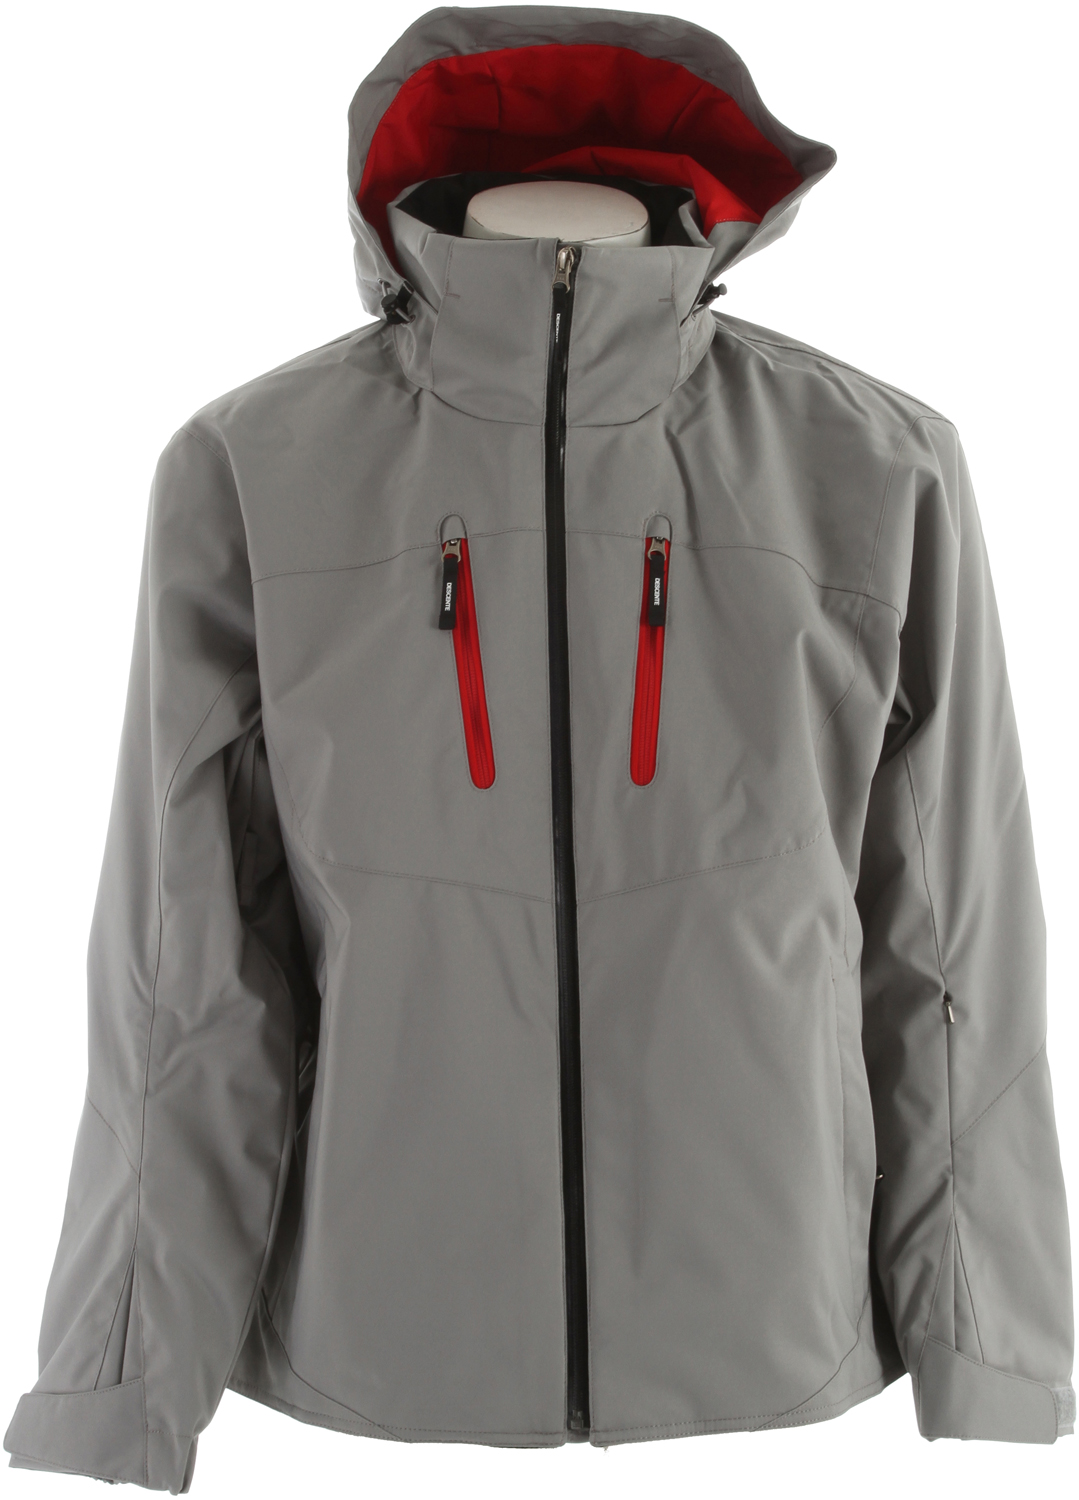 Ski Key Features of the Descente Guide Ski Jacket: Oxkin Outer fabric Heatflex 40 - $216.95